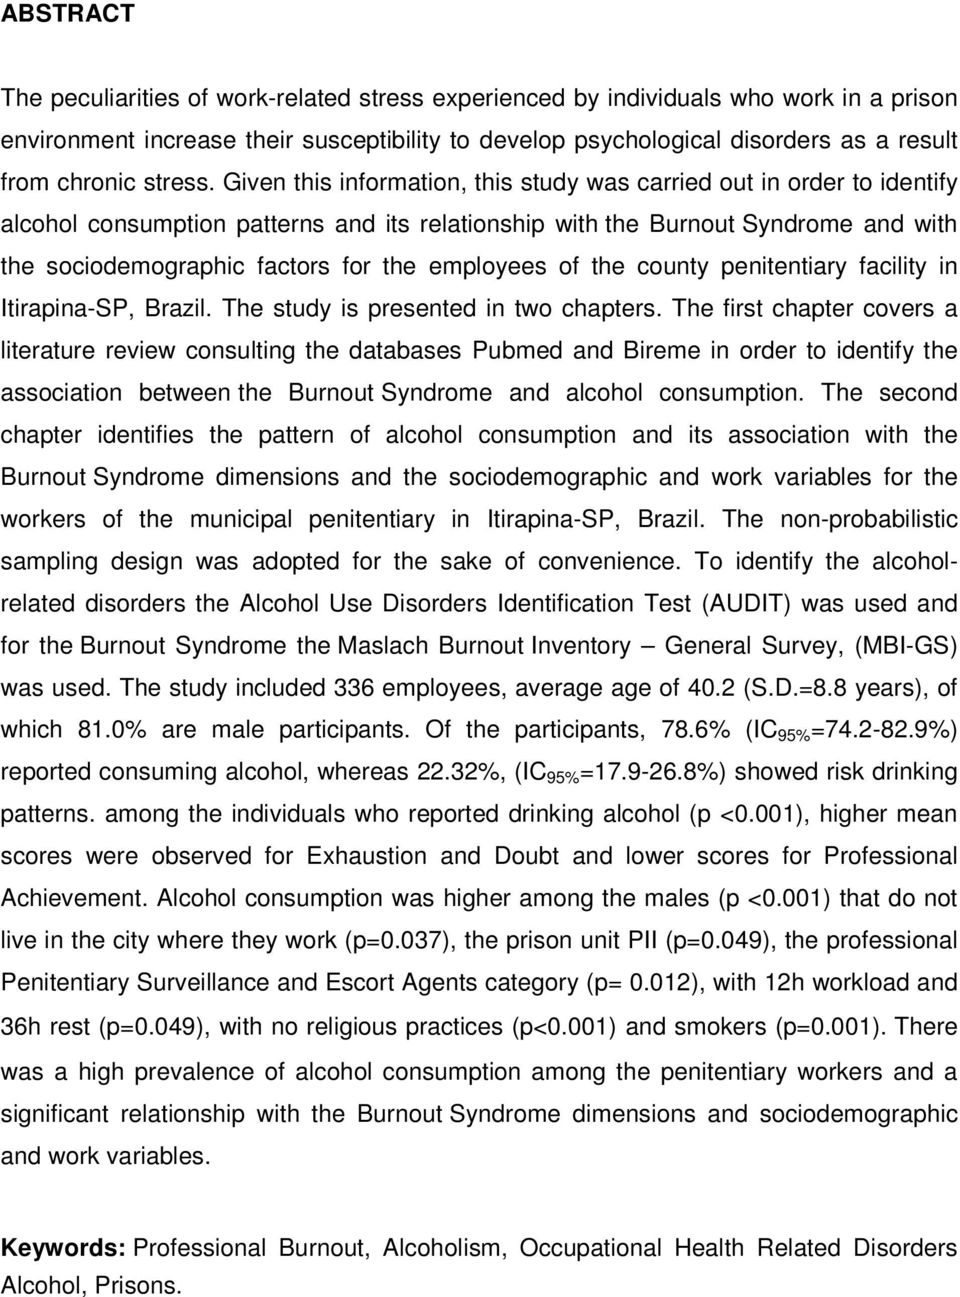 Given this information, this study was carried out in order to identify alcohol consumption patterns and its relationship with the Burnout Syndrome and with the sociodemographic factors for the